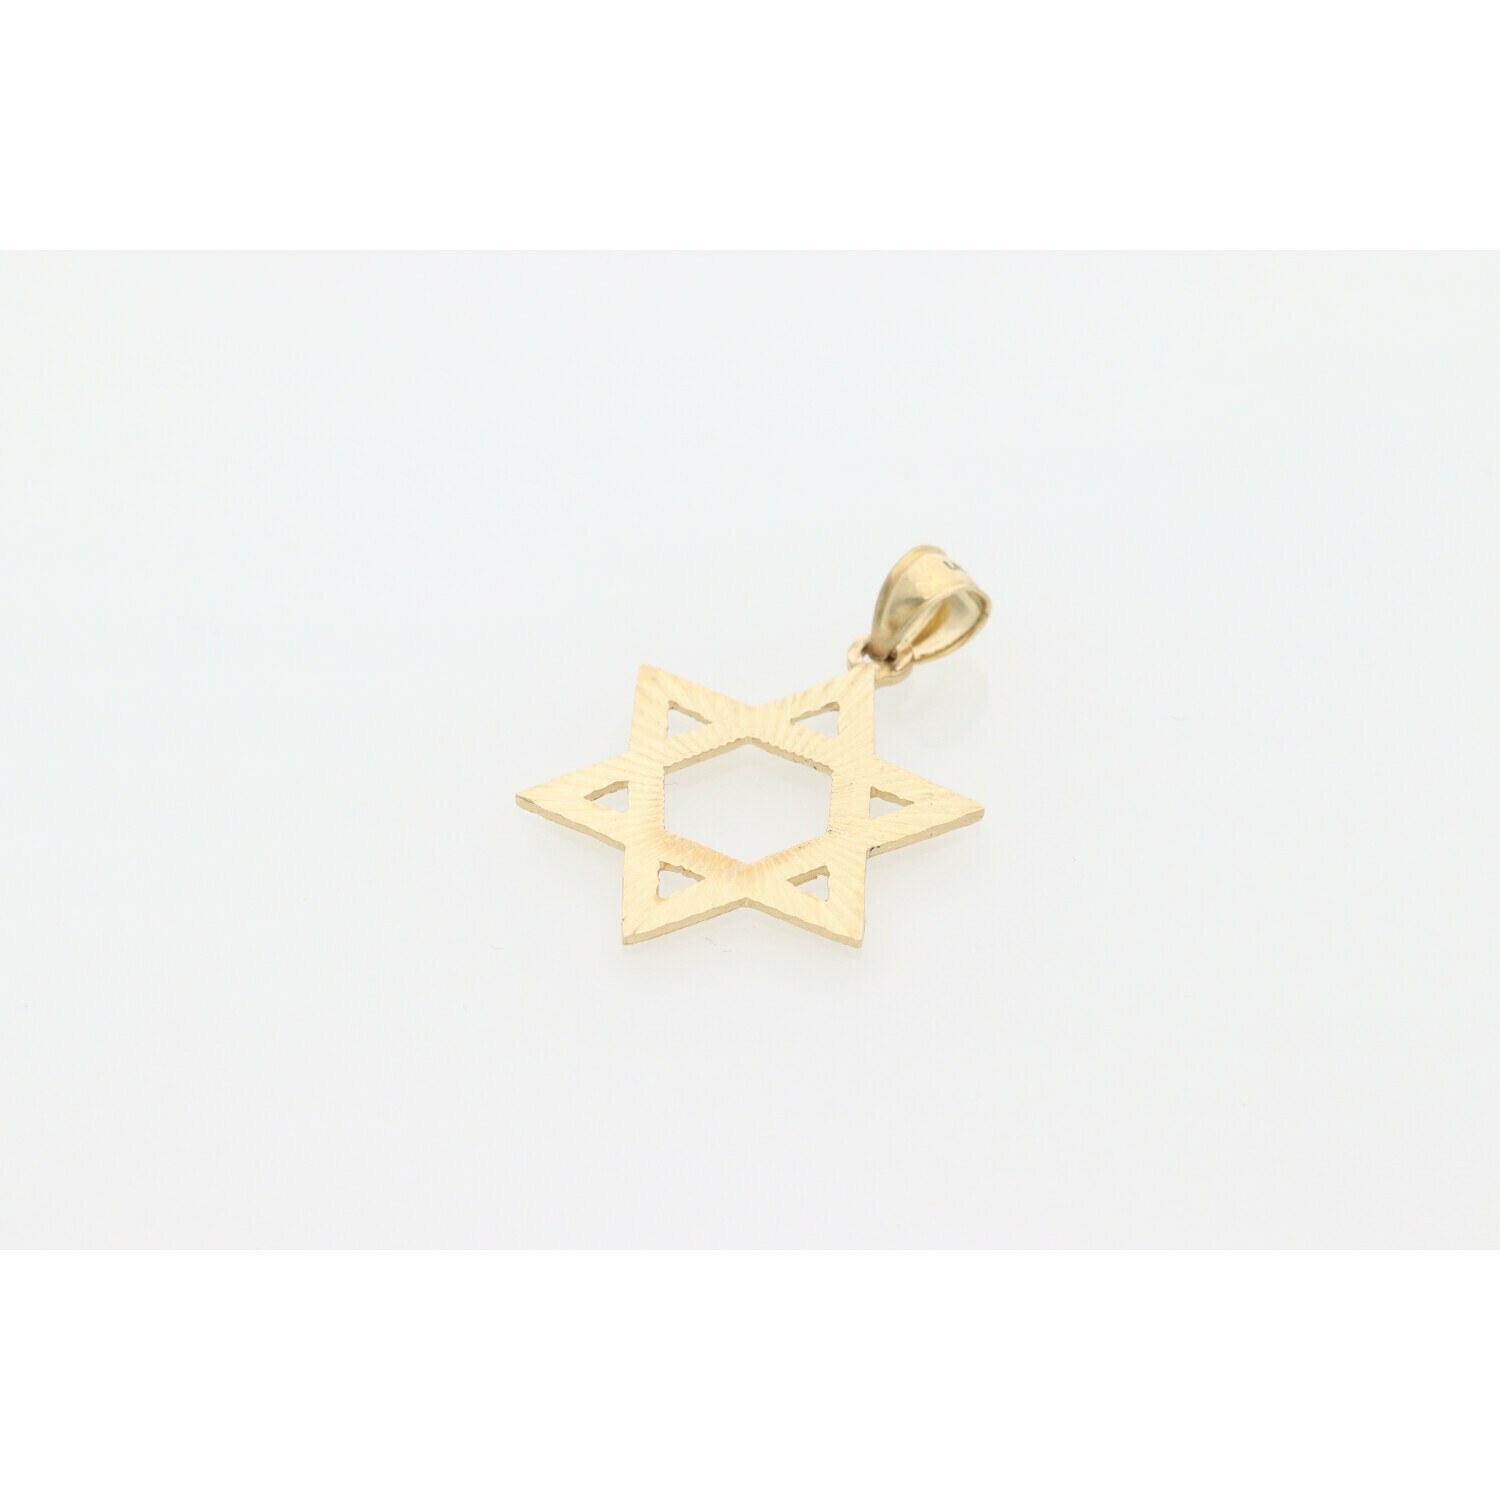 14 Karat Gold Textured David Star Charm